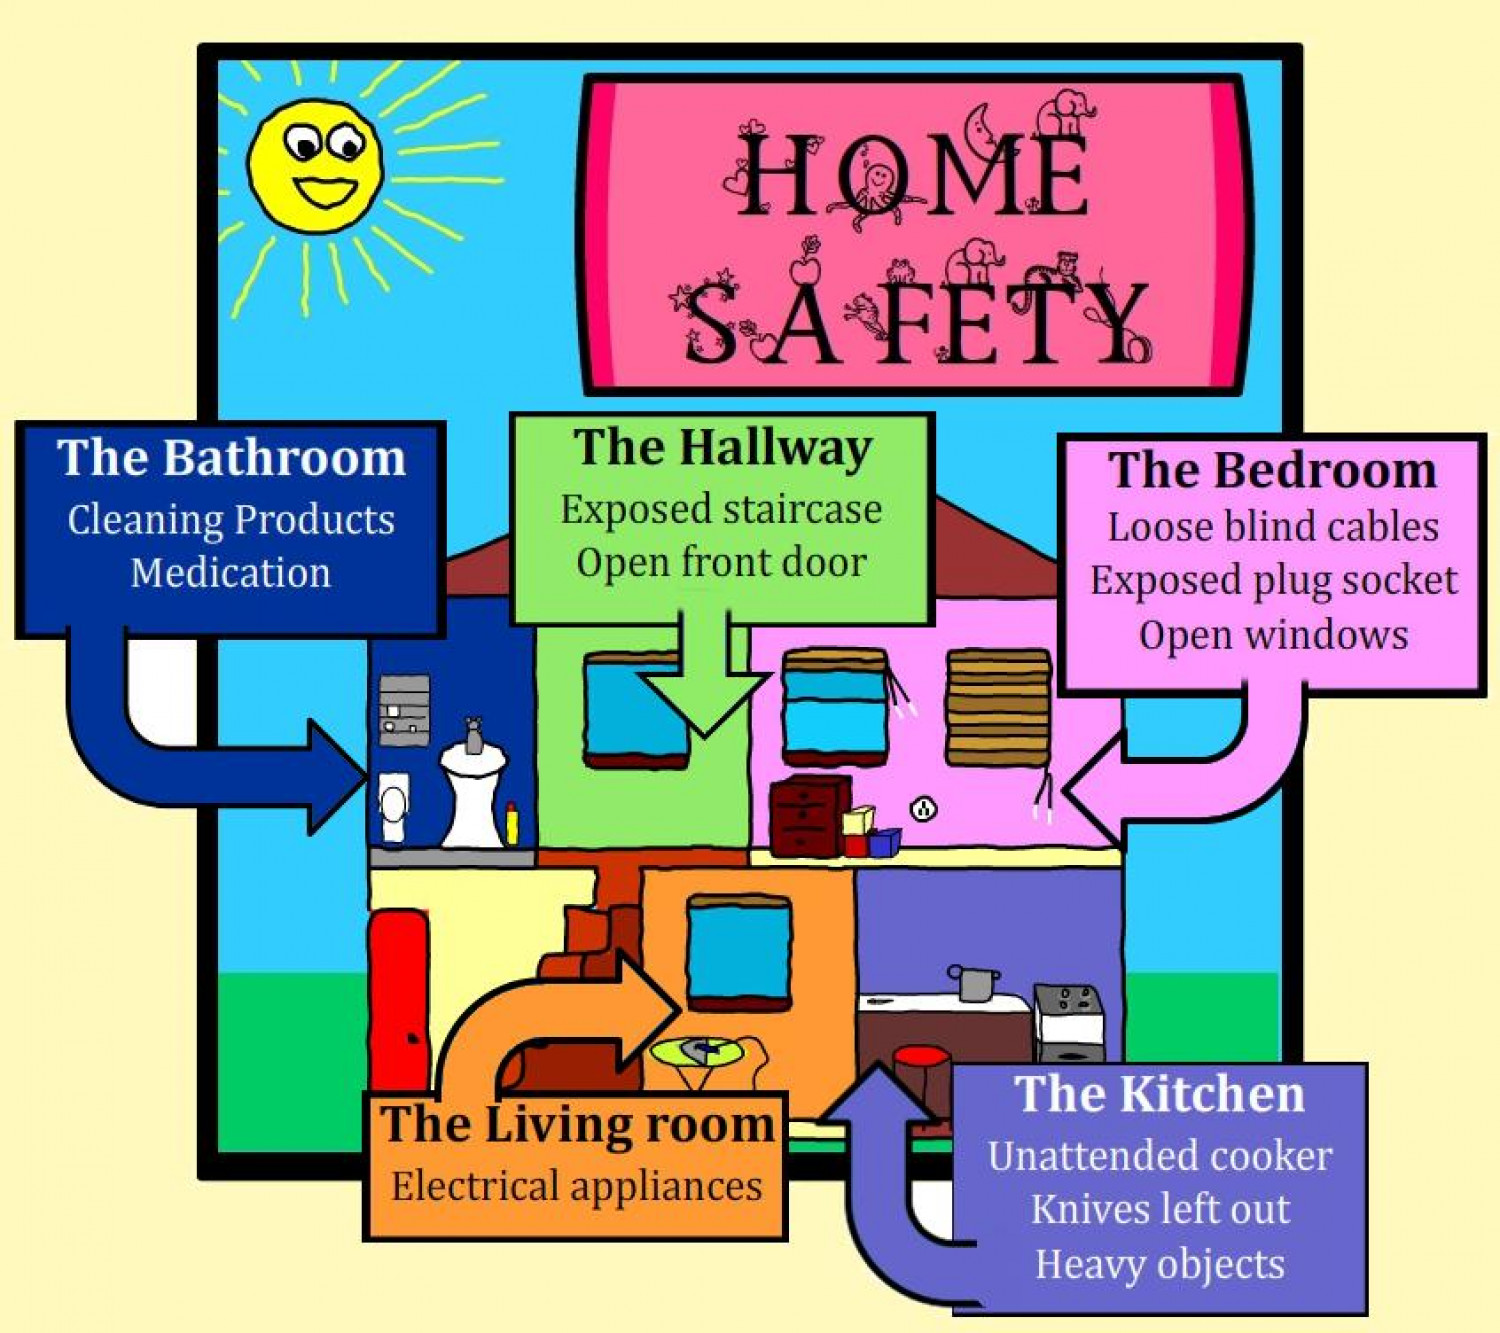 Toddler Safety - common home dangers | Visual.ly